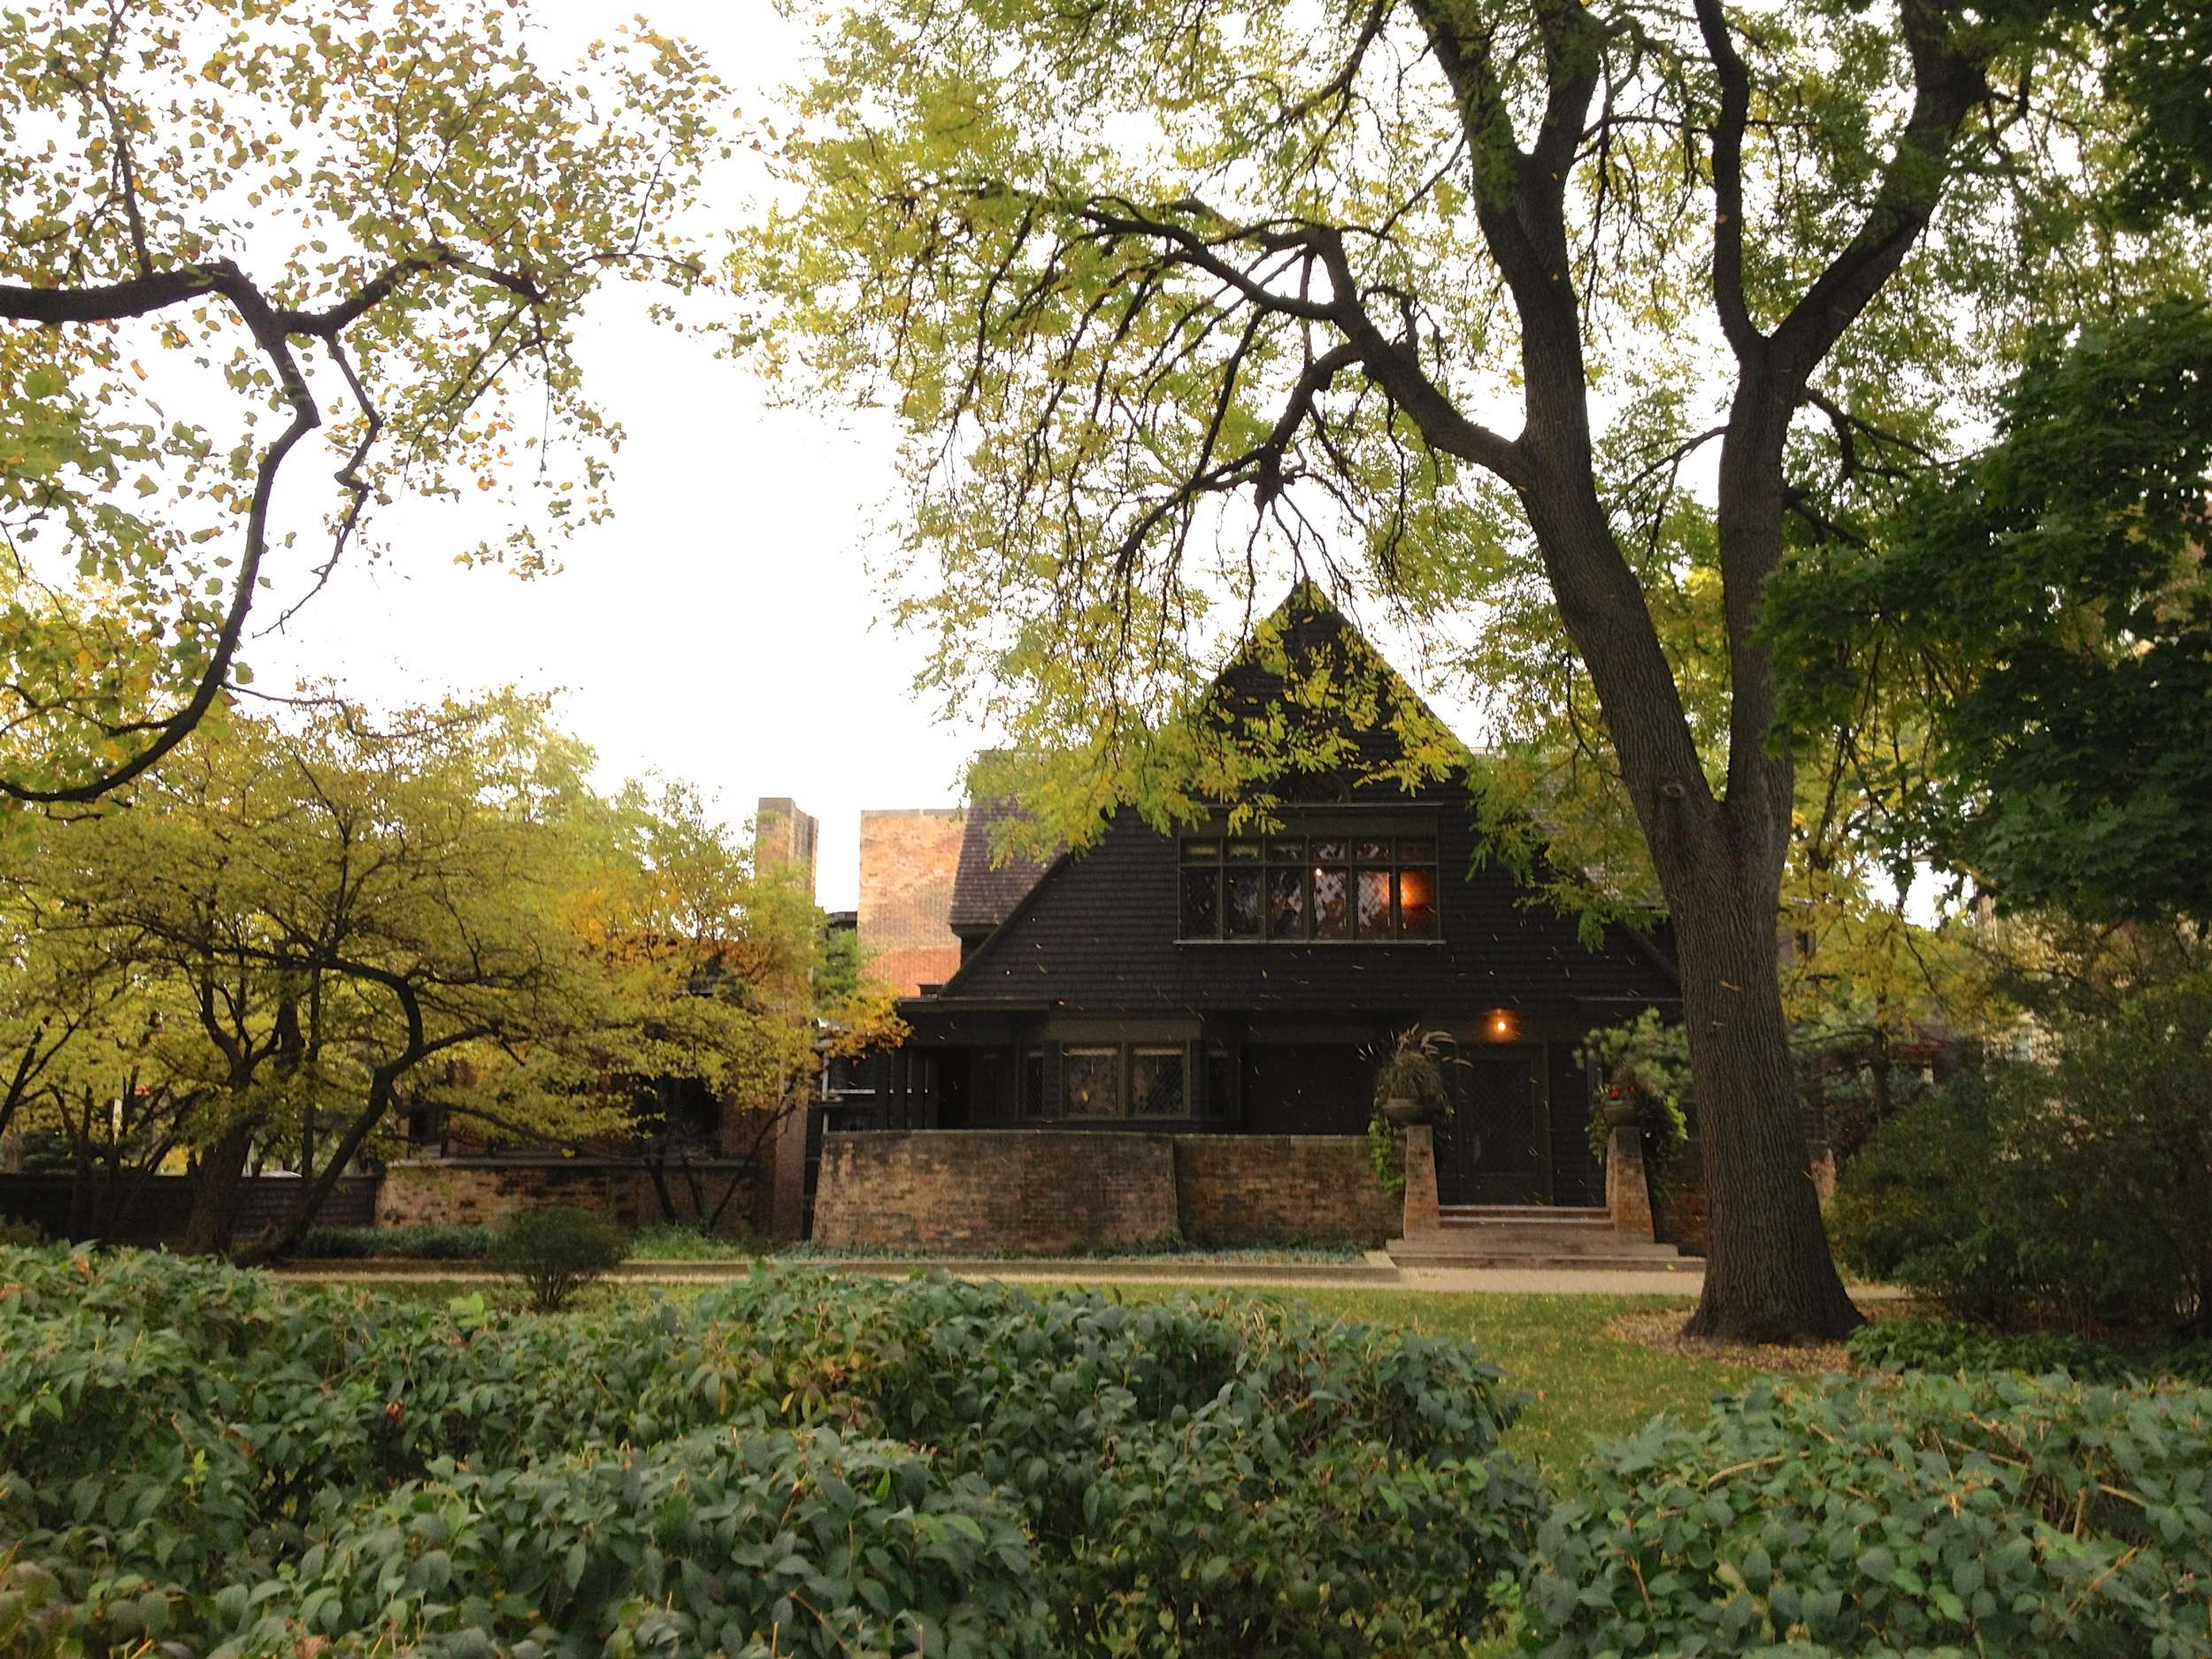 This photo is my absolute favorite from our trip. Frank Lloyd Wright's home and studio is nestled on the corner of a busy street in Oak Park, on the edge of the neighborhood, yet from this photo, you'd swear he lived tucked away in the forest. It's absolutely breathtaking.